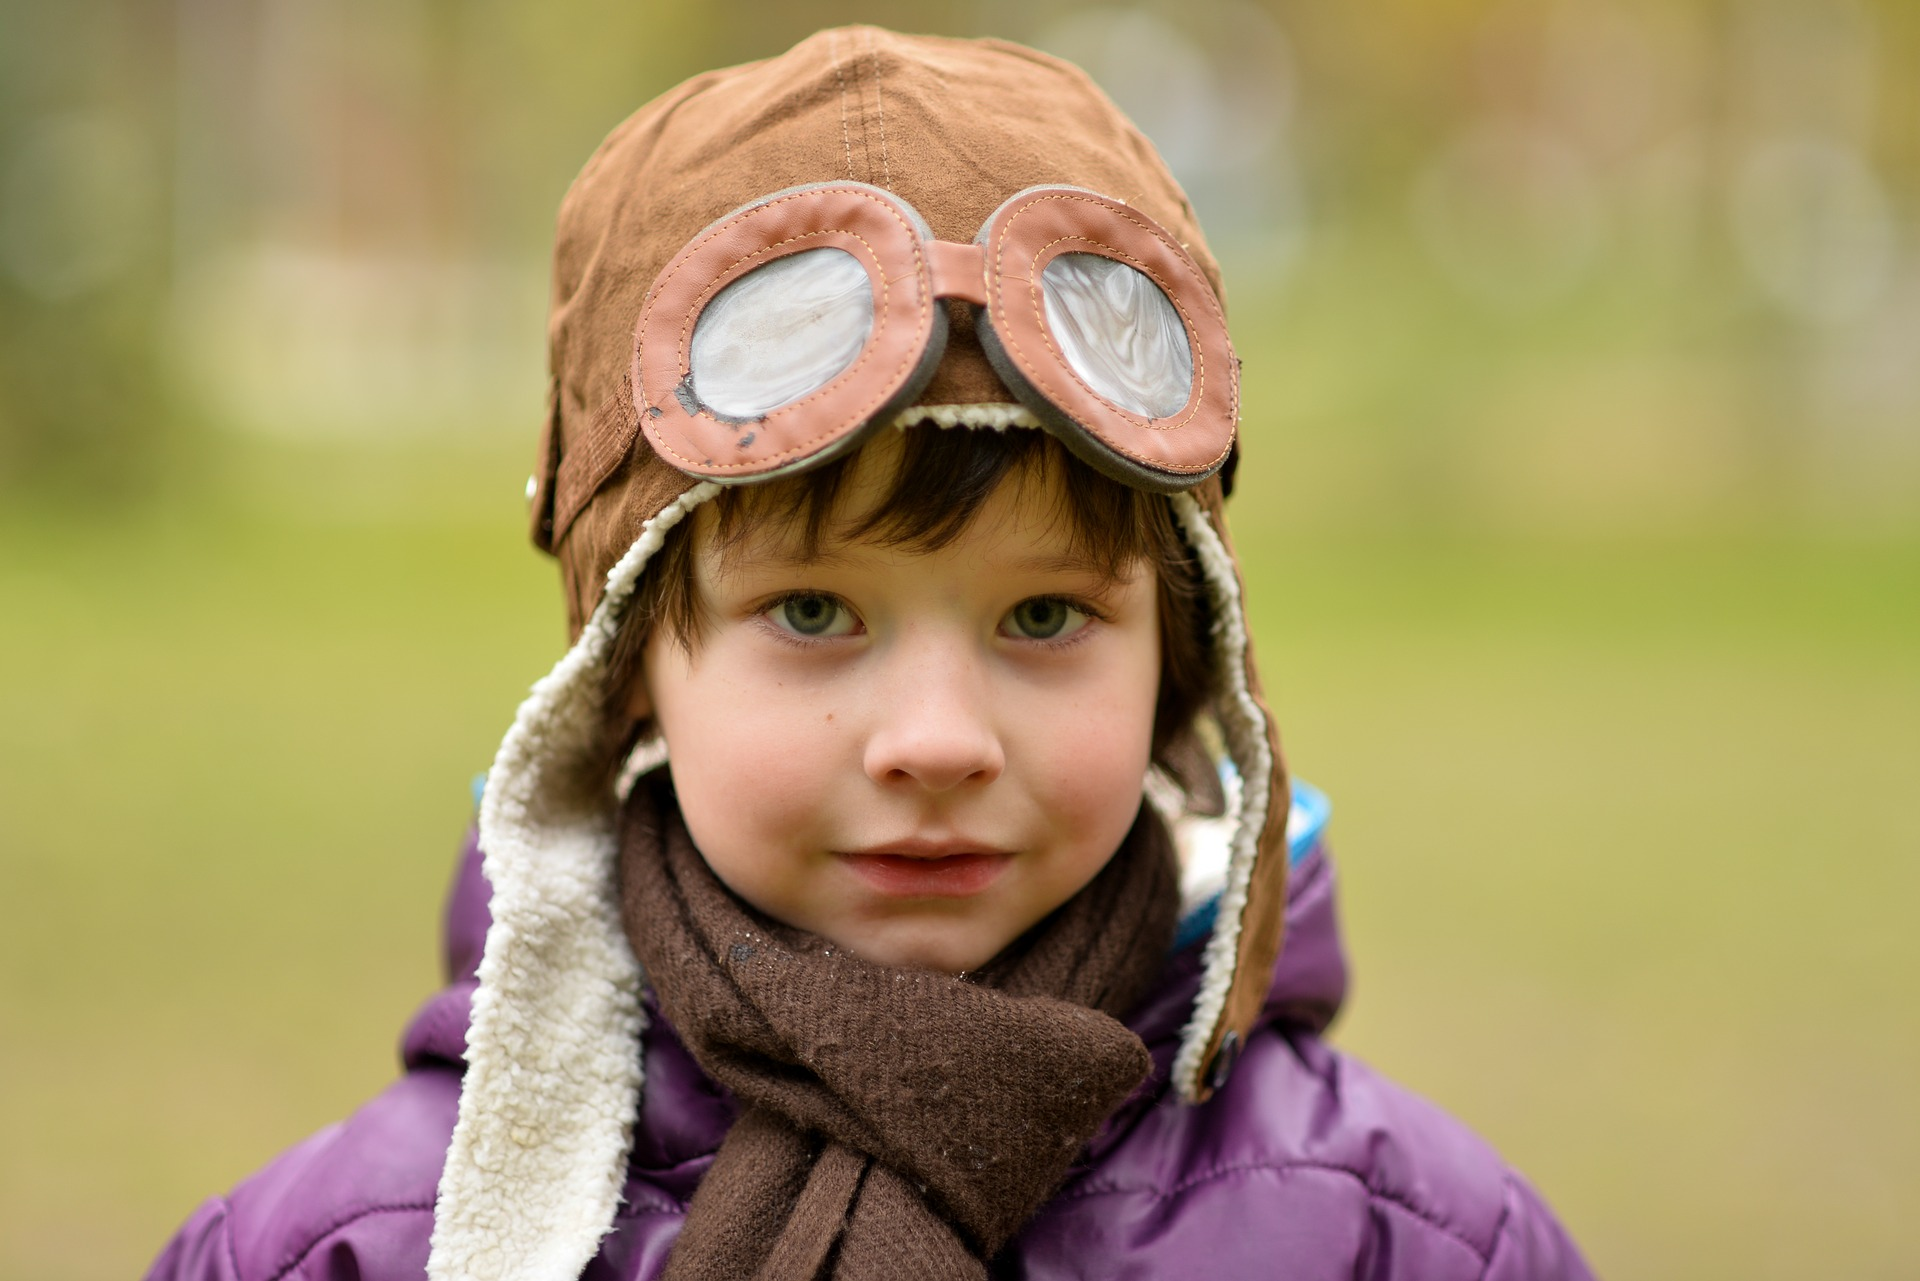 imaginative and confident child wearing a pilot's outfit